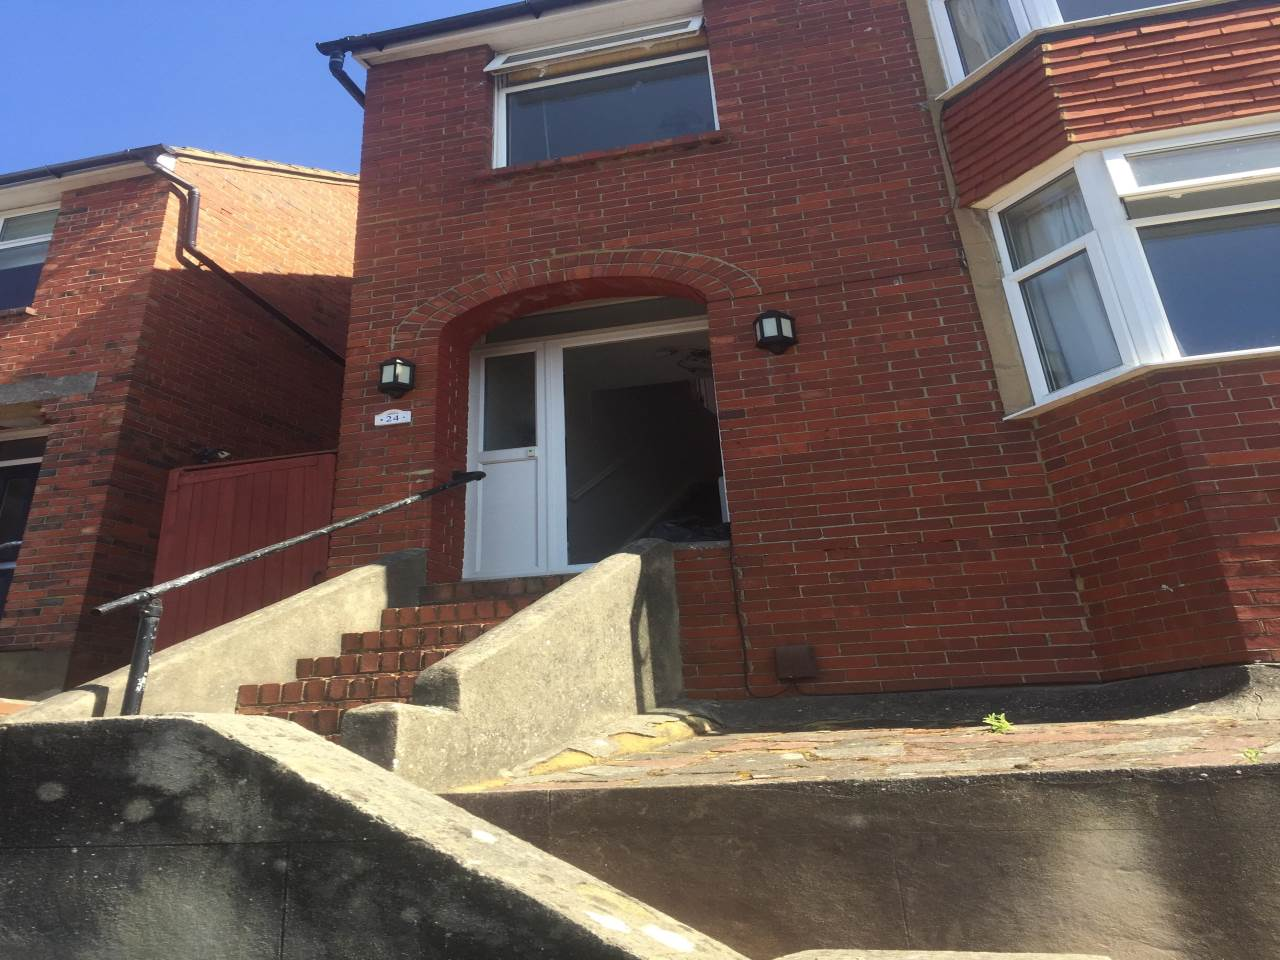 4 bed terraced house to rent in 24  Dudley Road Brighton BN1 7GN - Property Image 1